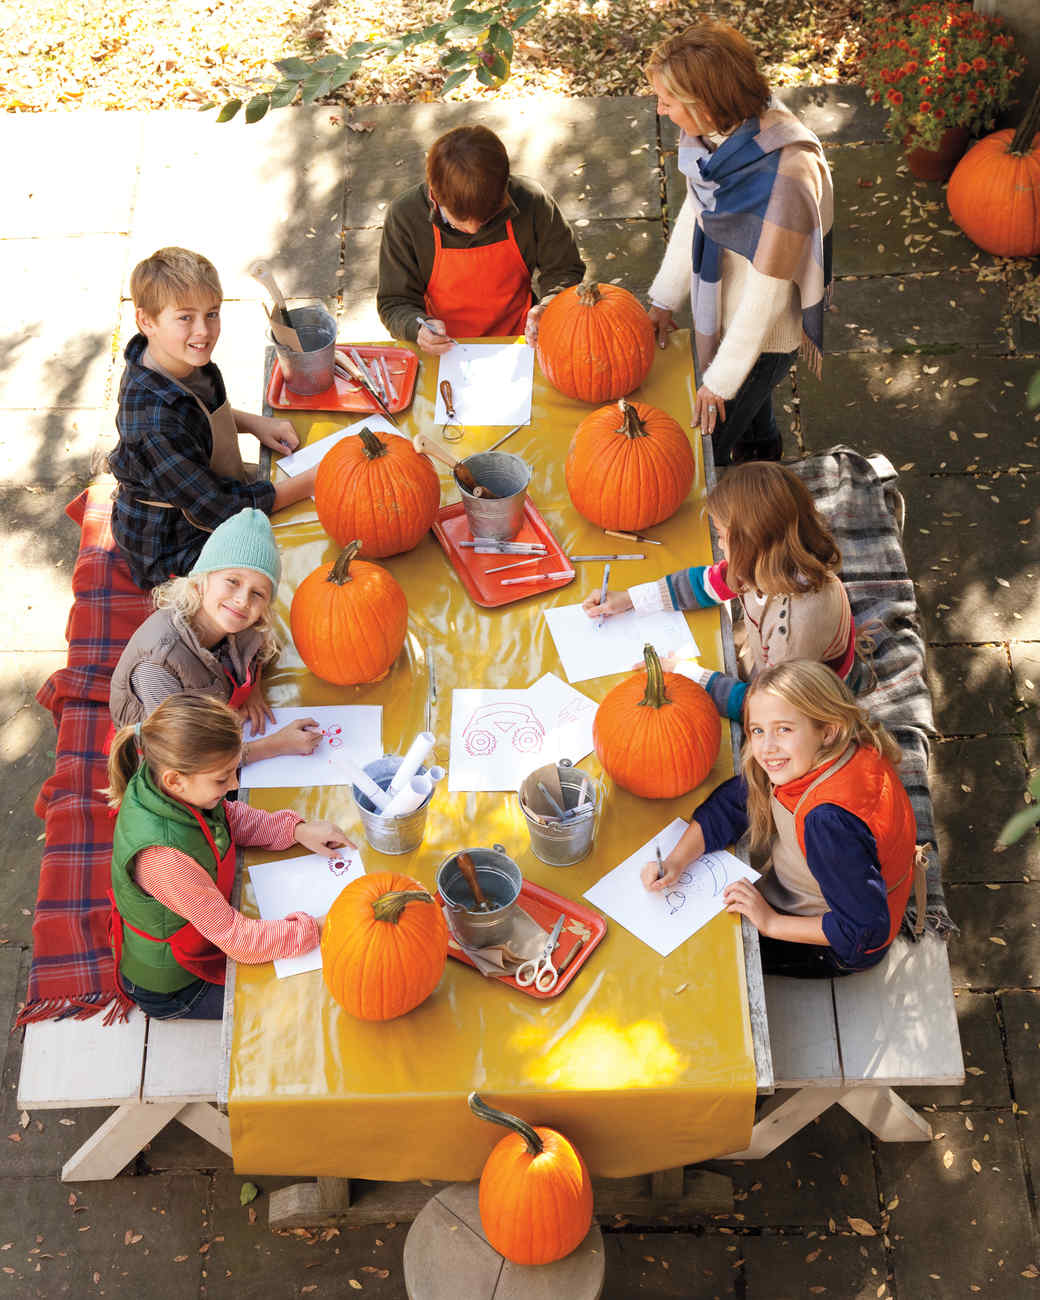 Party Pumpkin Ideas Video Choose a Carving Location